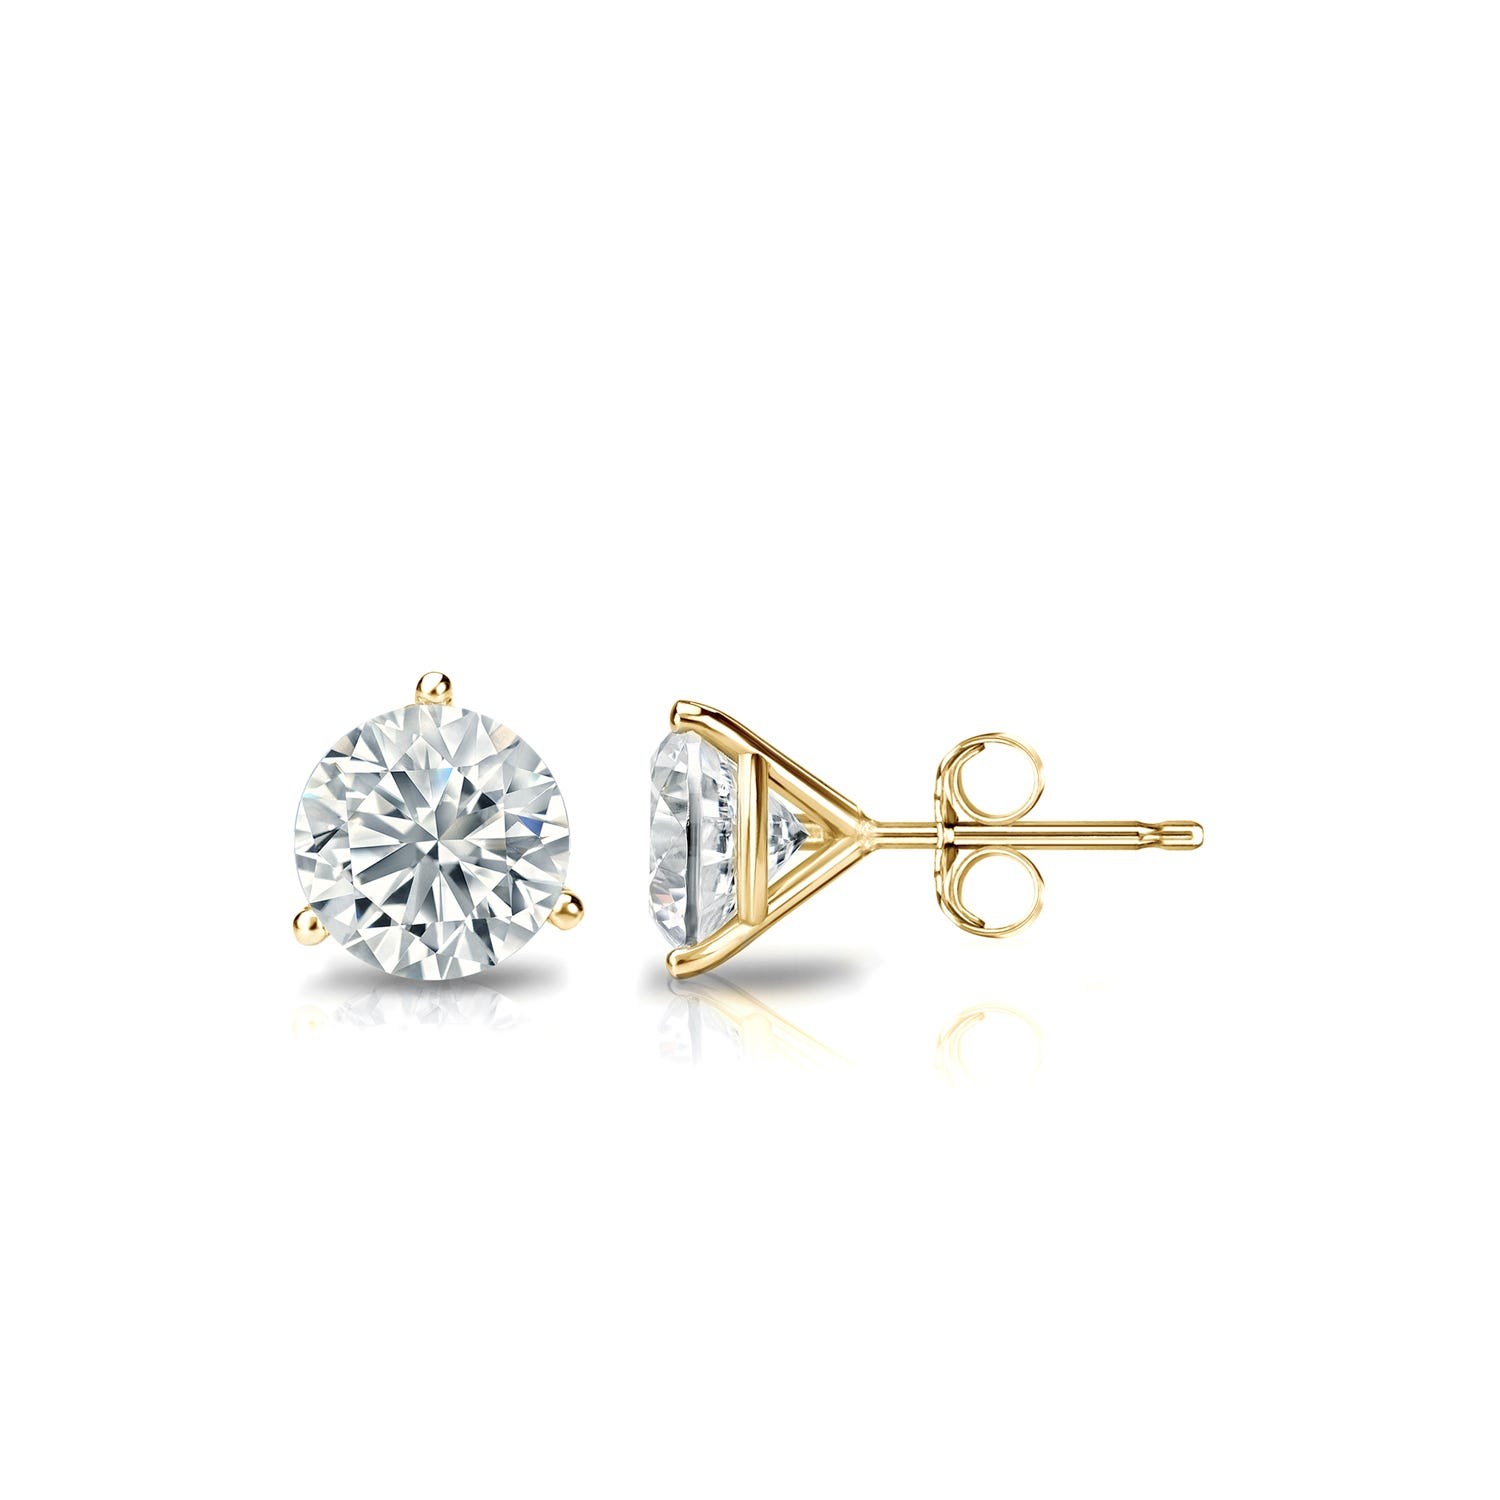 5/8 CTTW Round Diamond Solitaire Stud Earrings IJ I2 in 14K Yellow Gold 3-Prong Setting